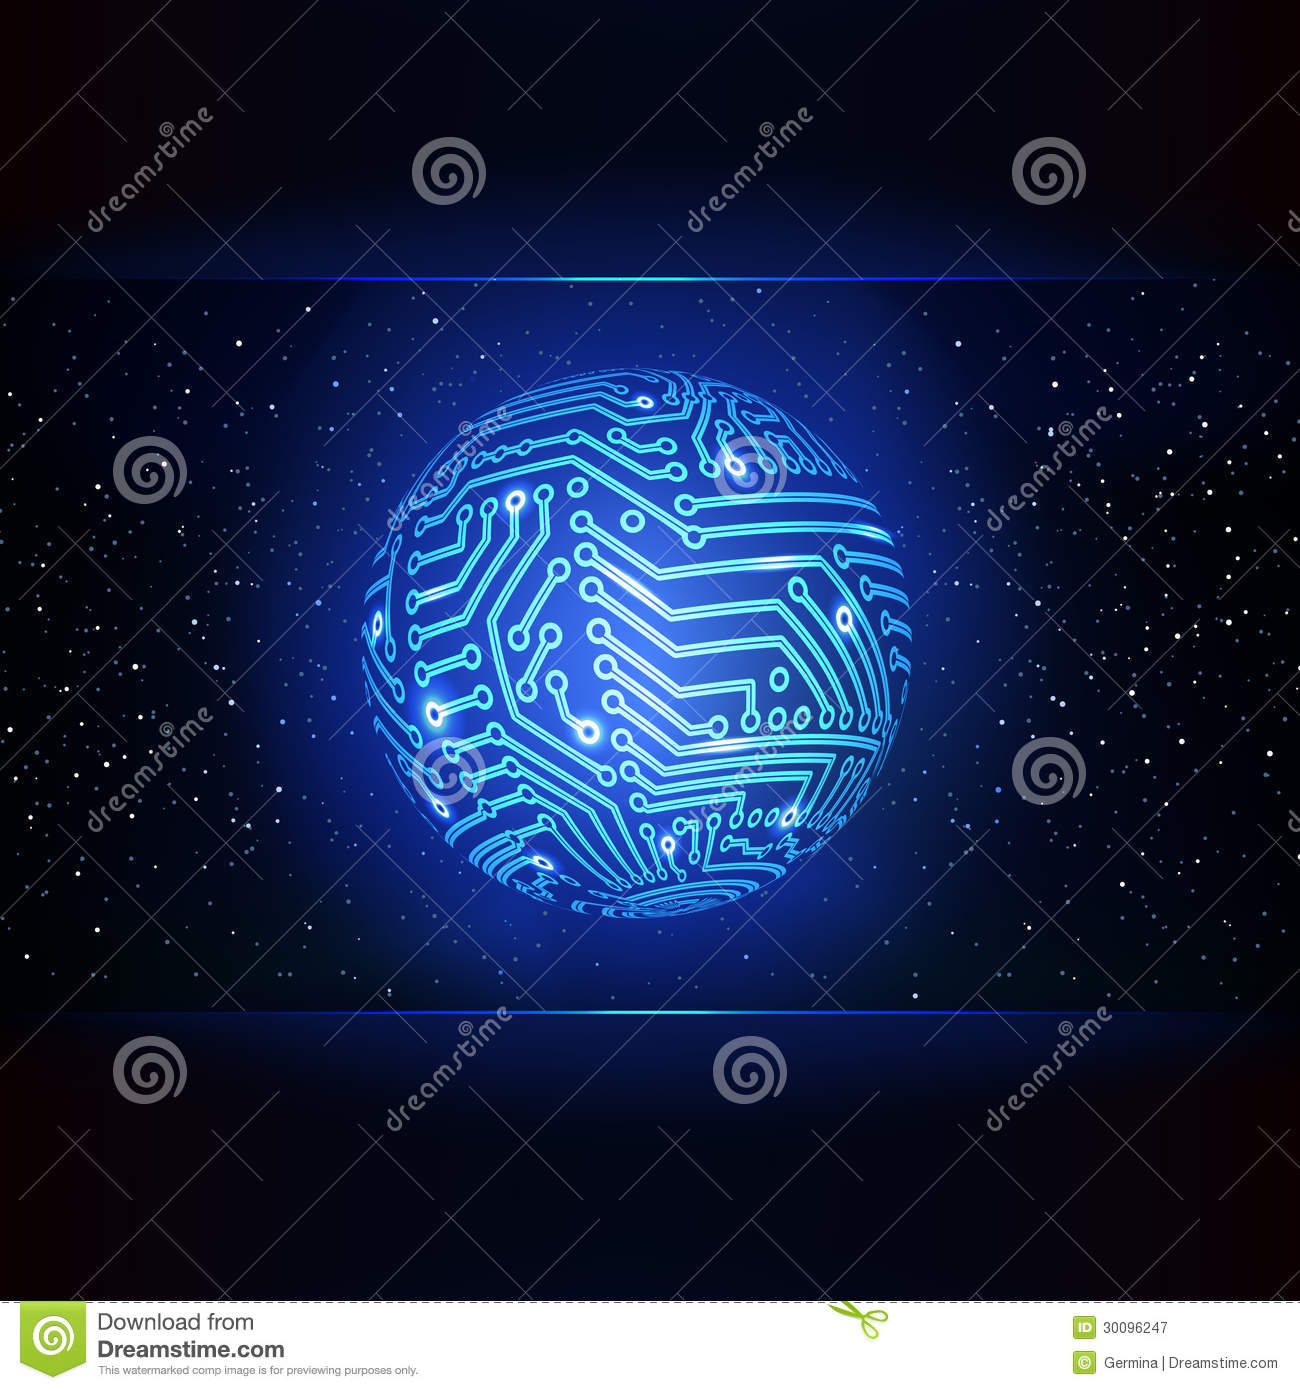 Abstract Electronic Devices Or Computer Circuits Global Network Sphere